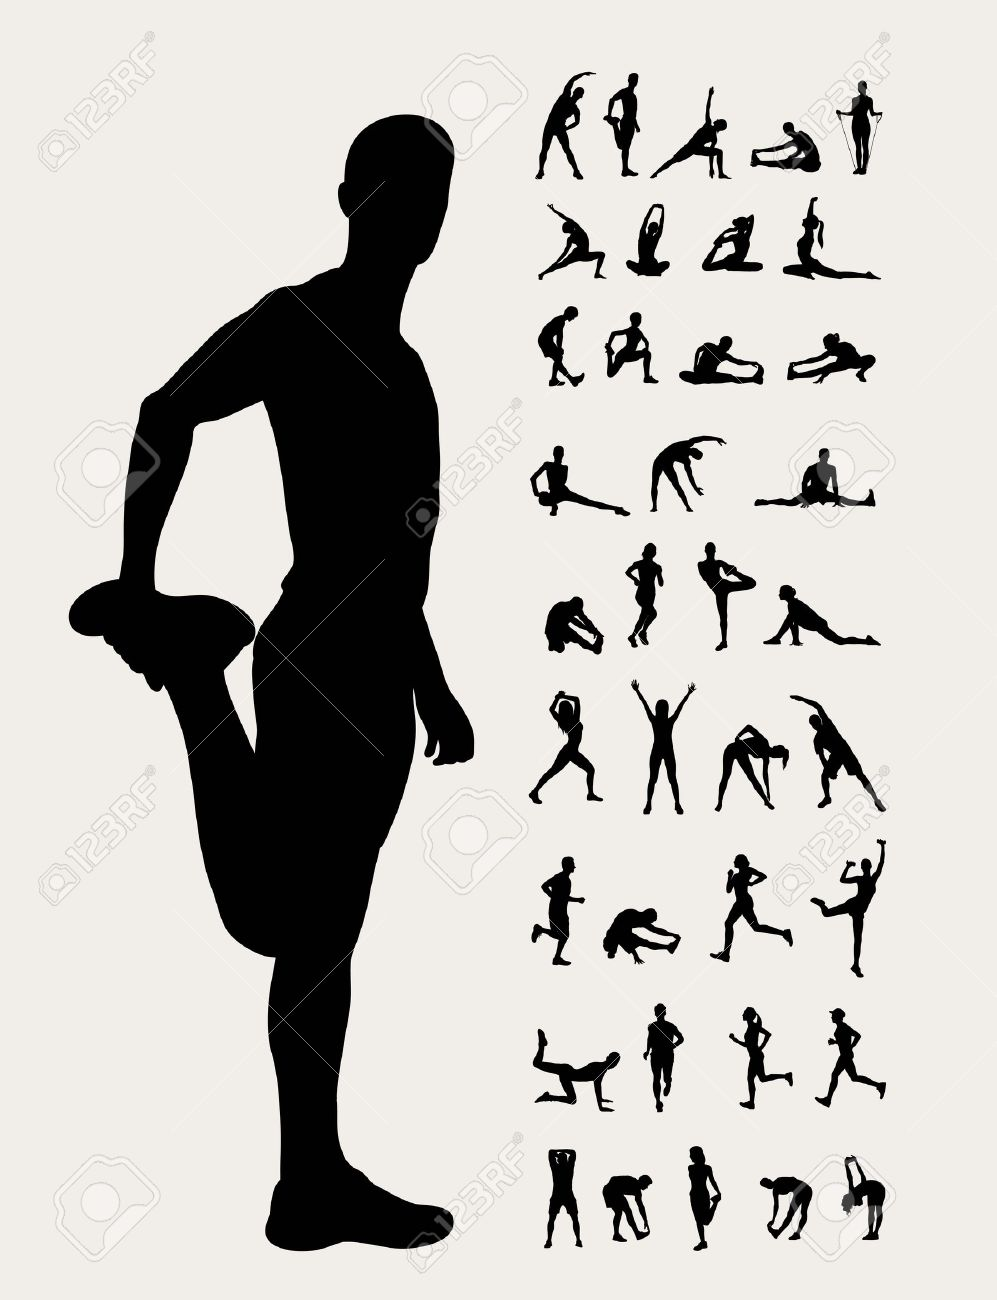 stretching-silhouettes